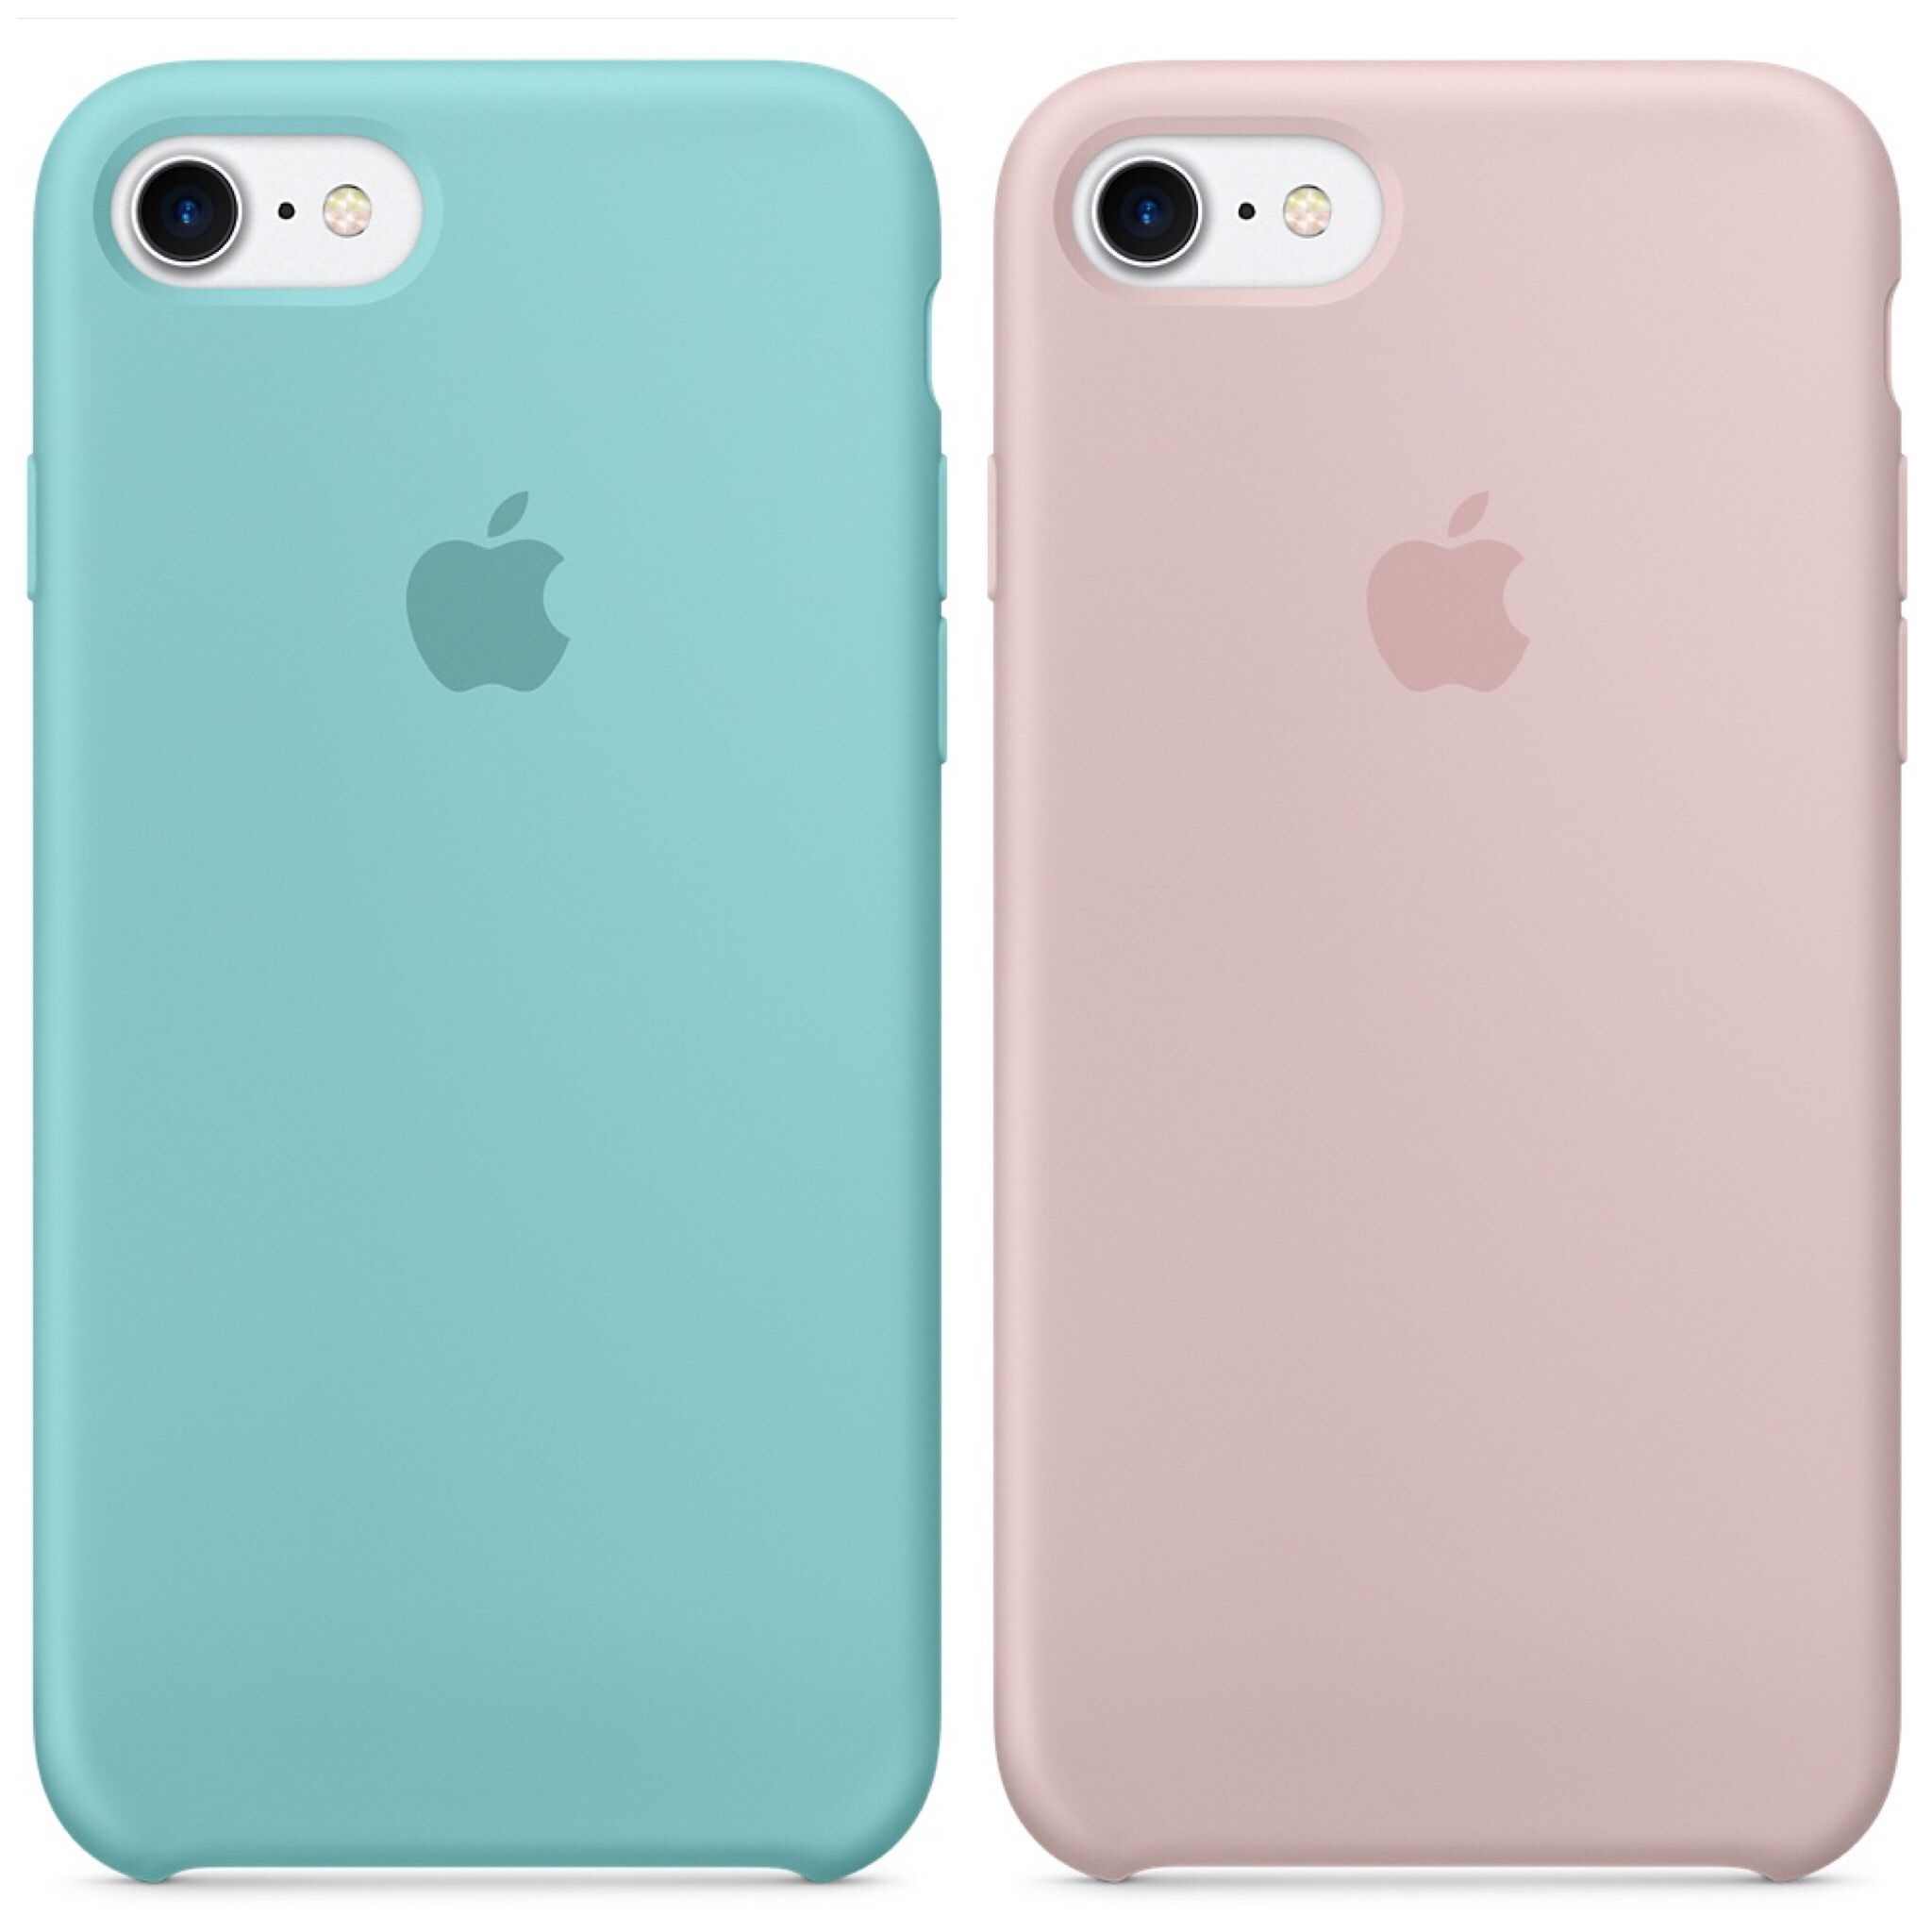 Apple Silicone Case for iPhone 7 ~ Sea Blue   Pink Sand  15d0cdc4641db